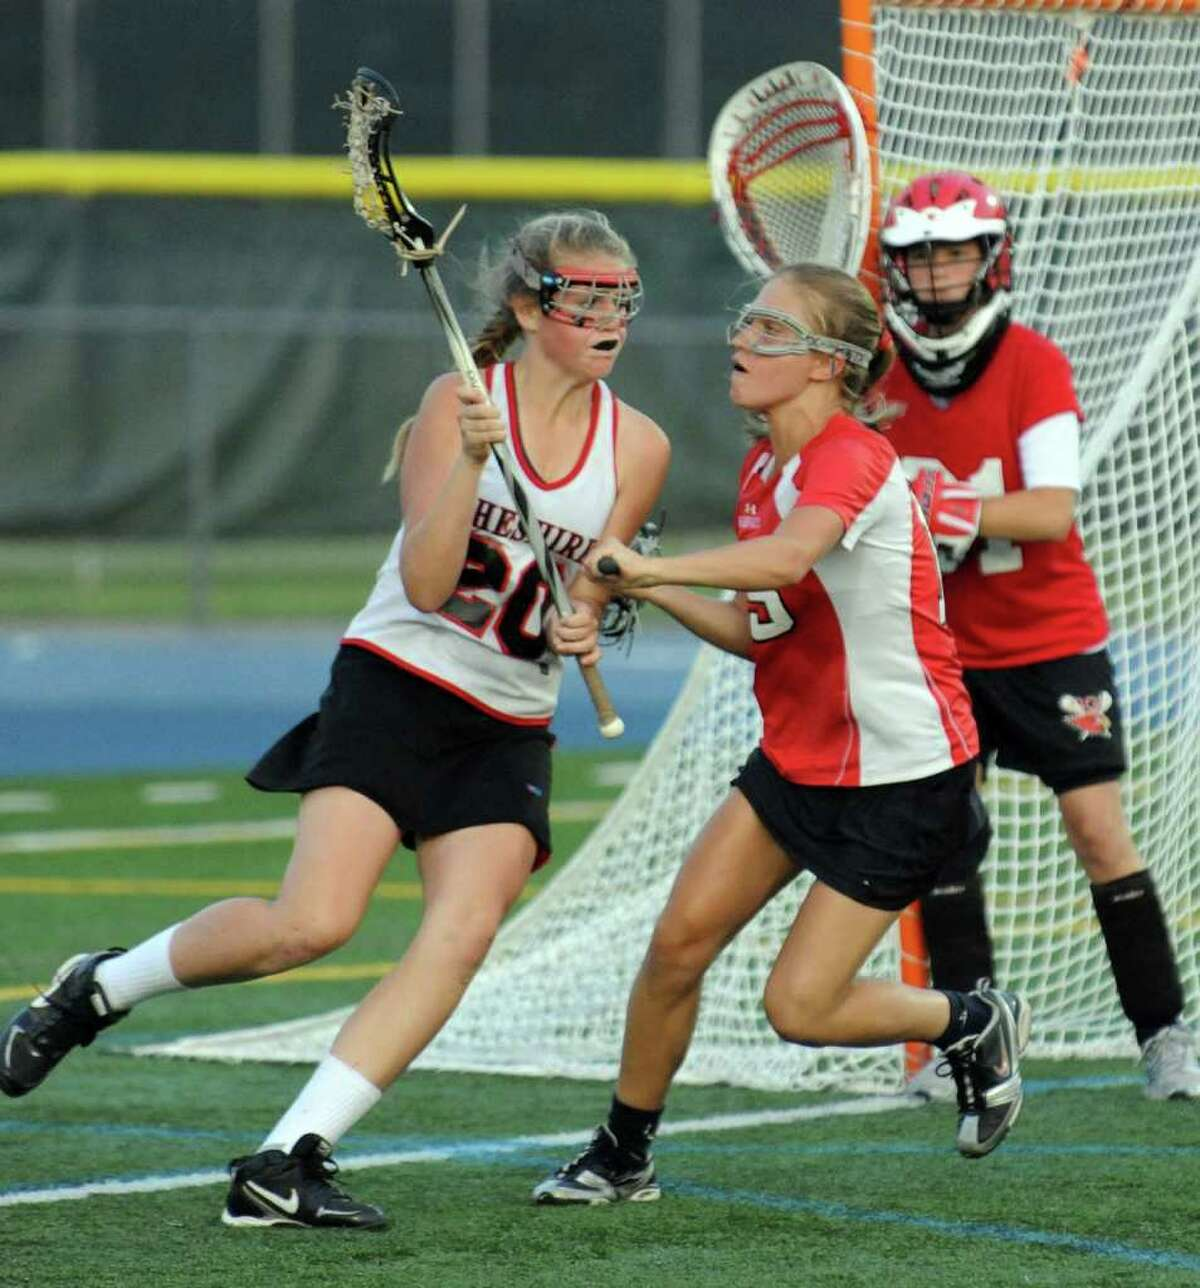 Highlights from CIAC Class L semifinal girls lacrosse action between Greenwich and Cheshire at Bunnell High in Stratford, Conn. on Wednesday June 8, 2011.